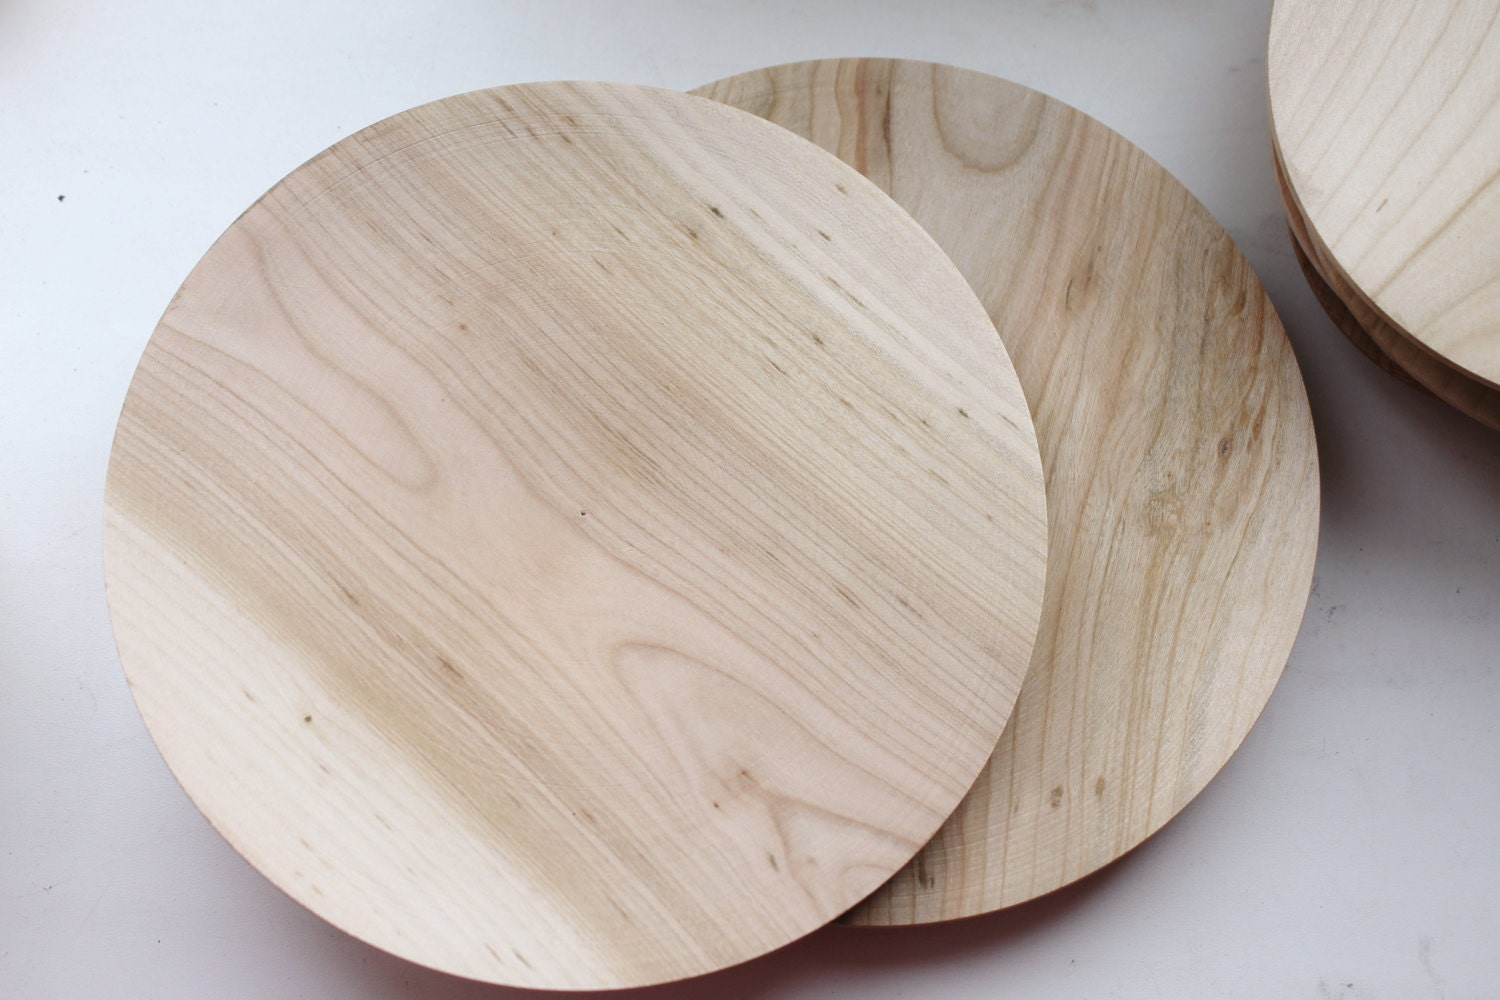 & Wooden plate 18 cm 7.2 inch unfinished natural eco friendly